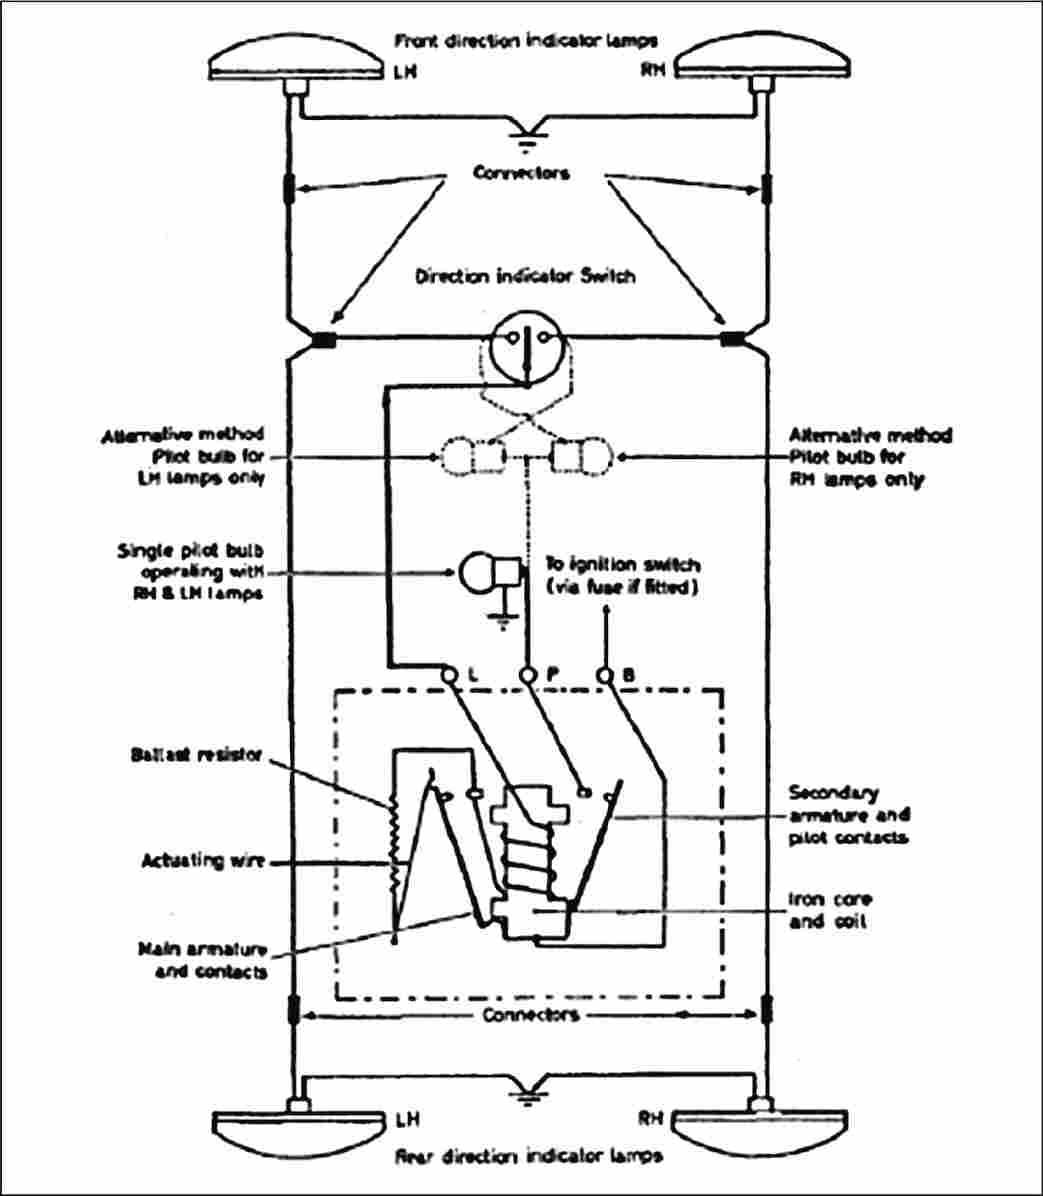 standard_flasher_diagram modern flasher circuits flasher unit wiring diagram at alyssarenee.co